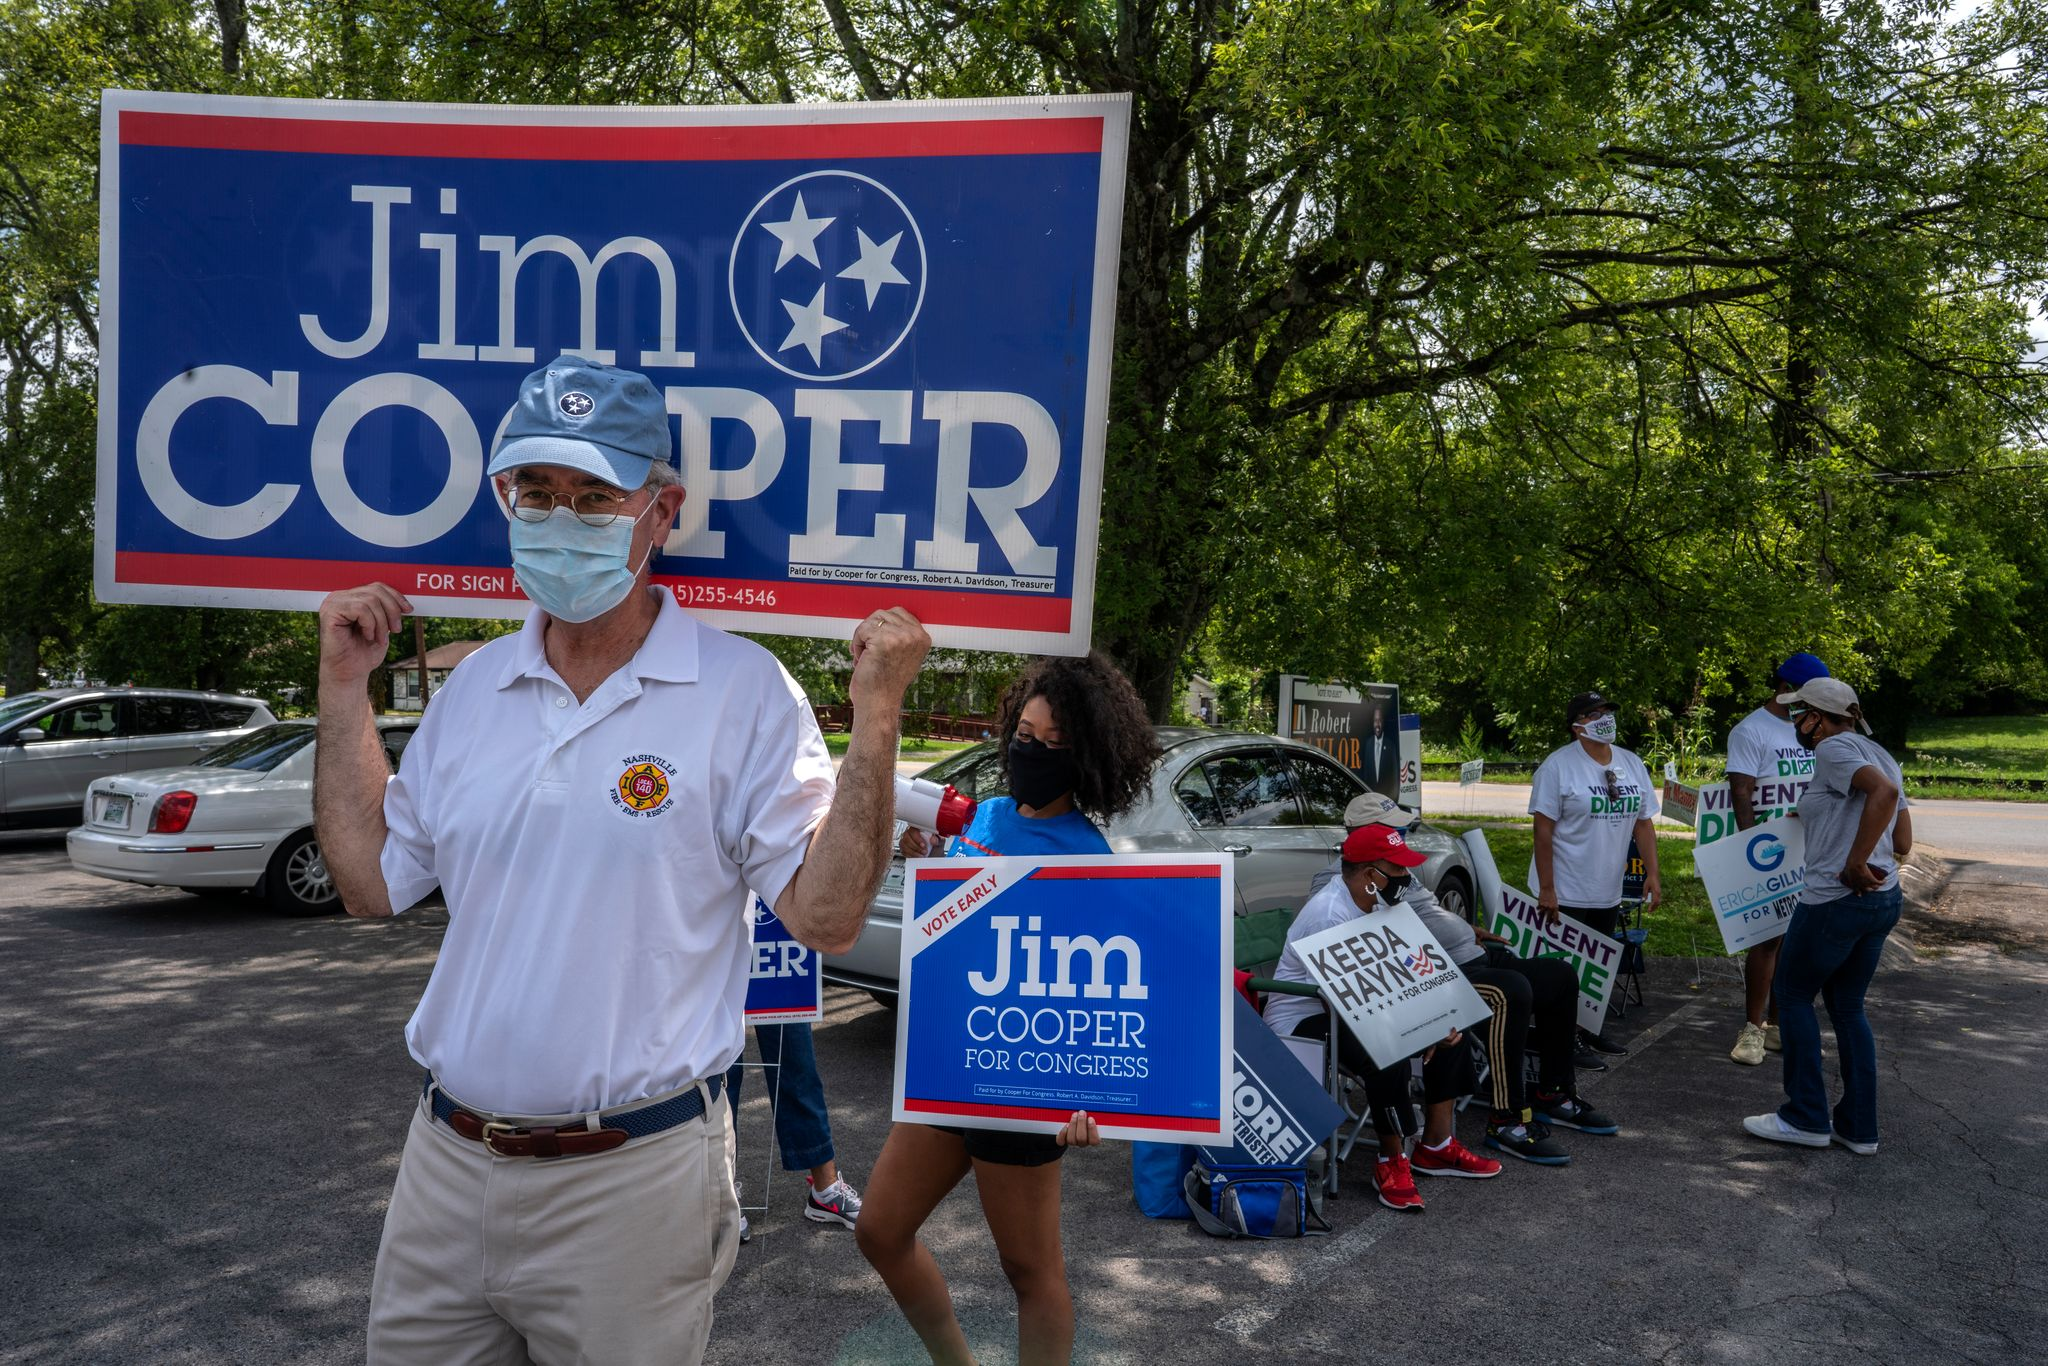 U.S. Rep. Jim Cooper campaigning at Cathedral of Praise in North Nashville. (Photo: John Partipilo)